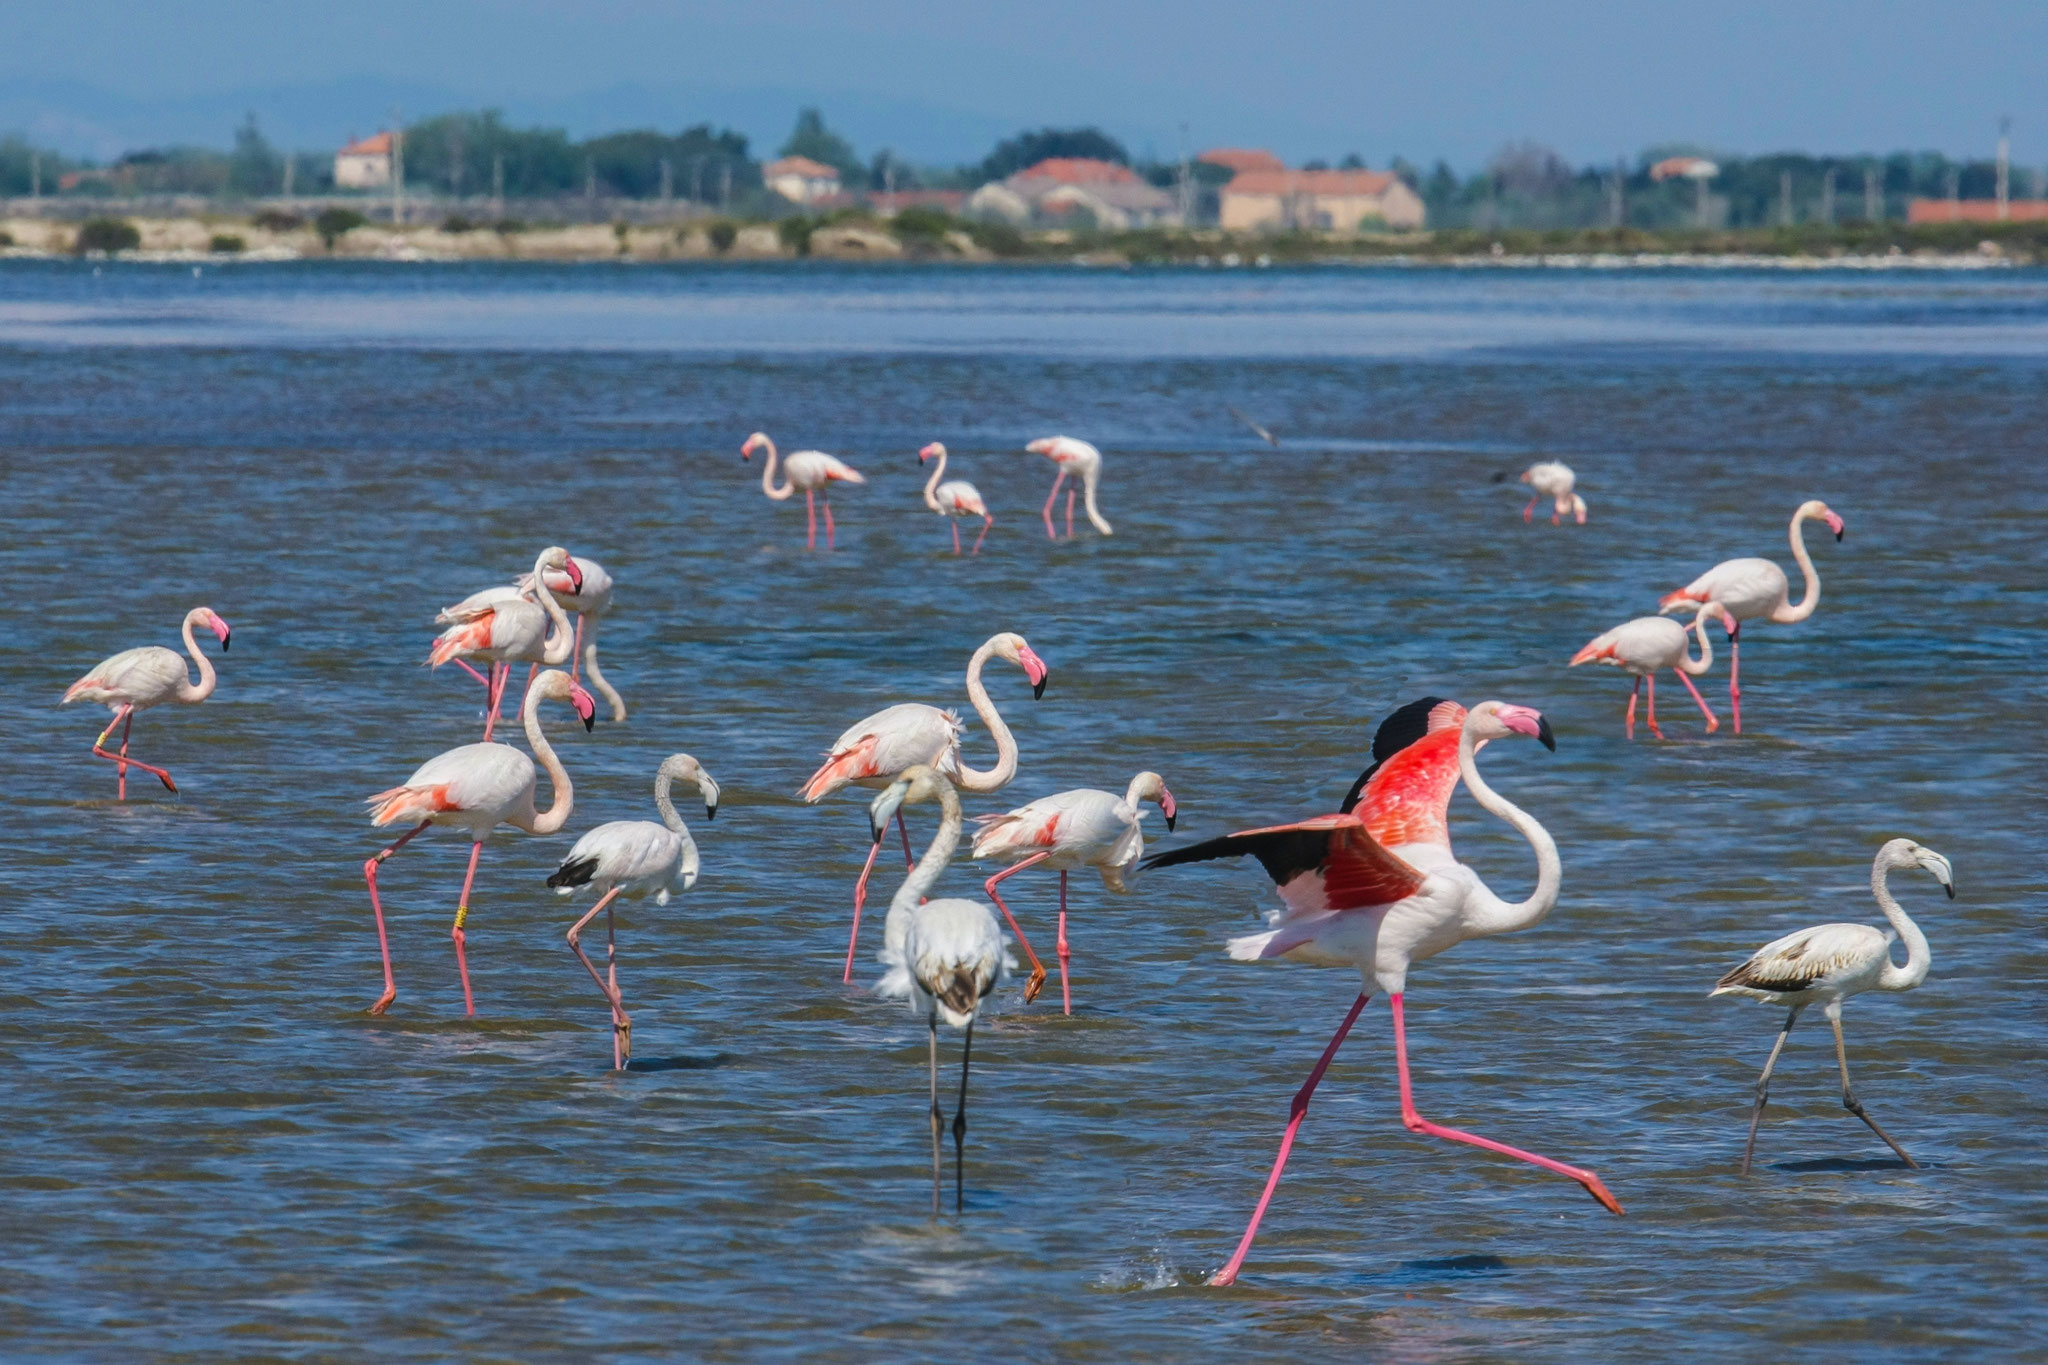 Flamants roses dans le salin de Giraud